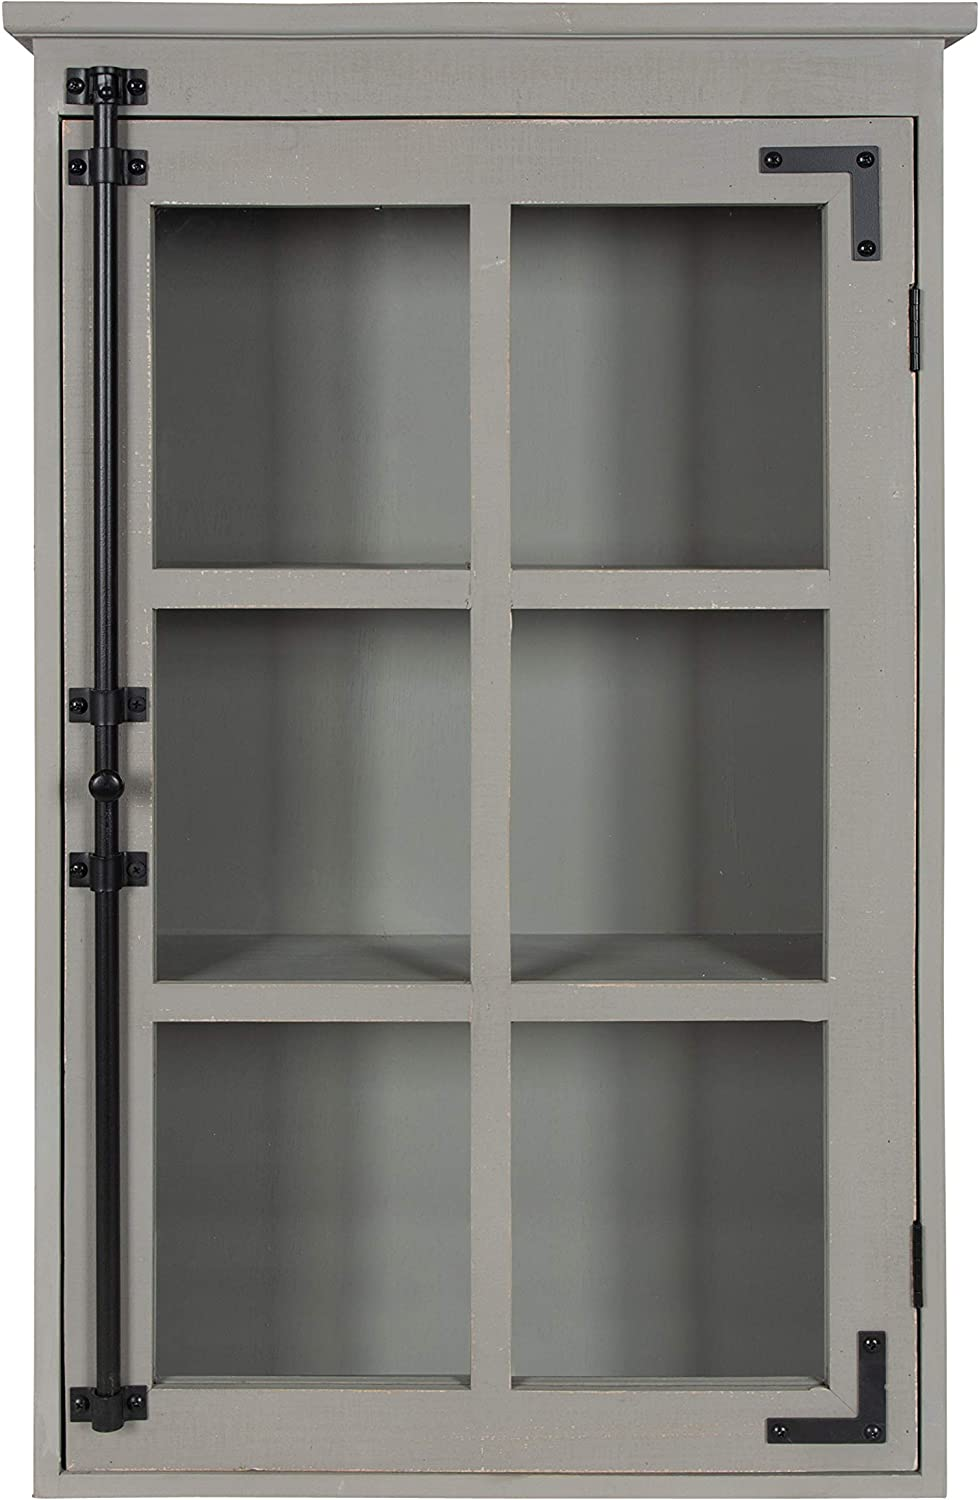 Kate and Laurel Hutchins Rustic Decorative Wood Wall Cabinet, 19.5 x 31.5, Gray, Farmhouse Cabinet with Glass Door